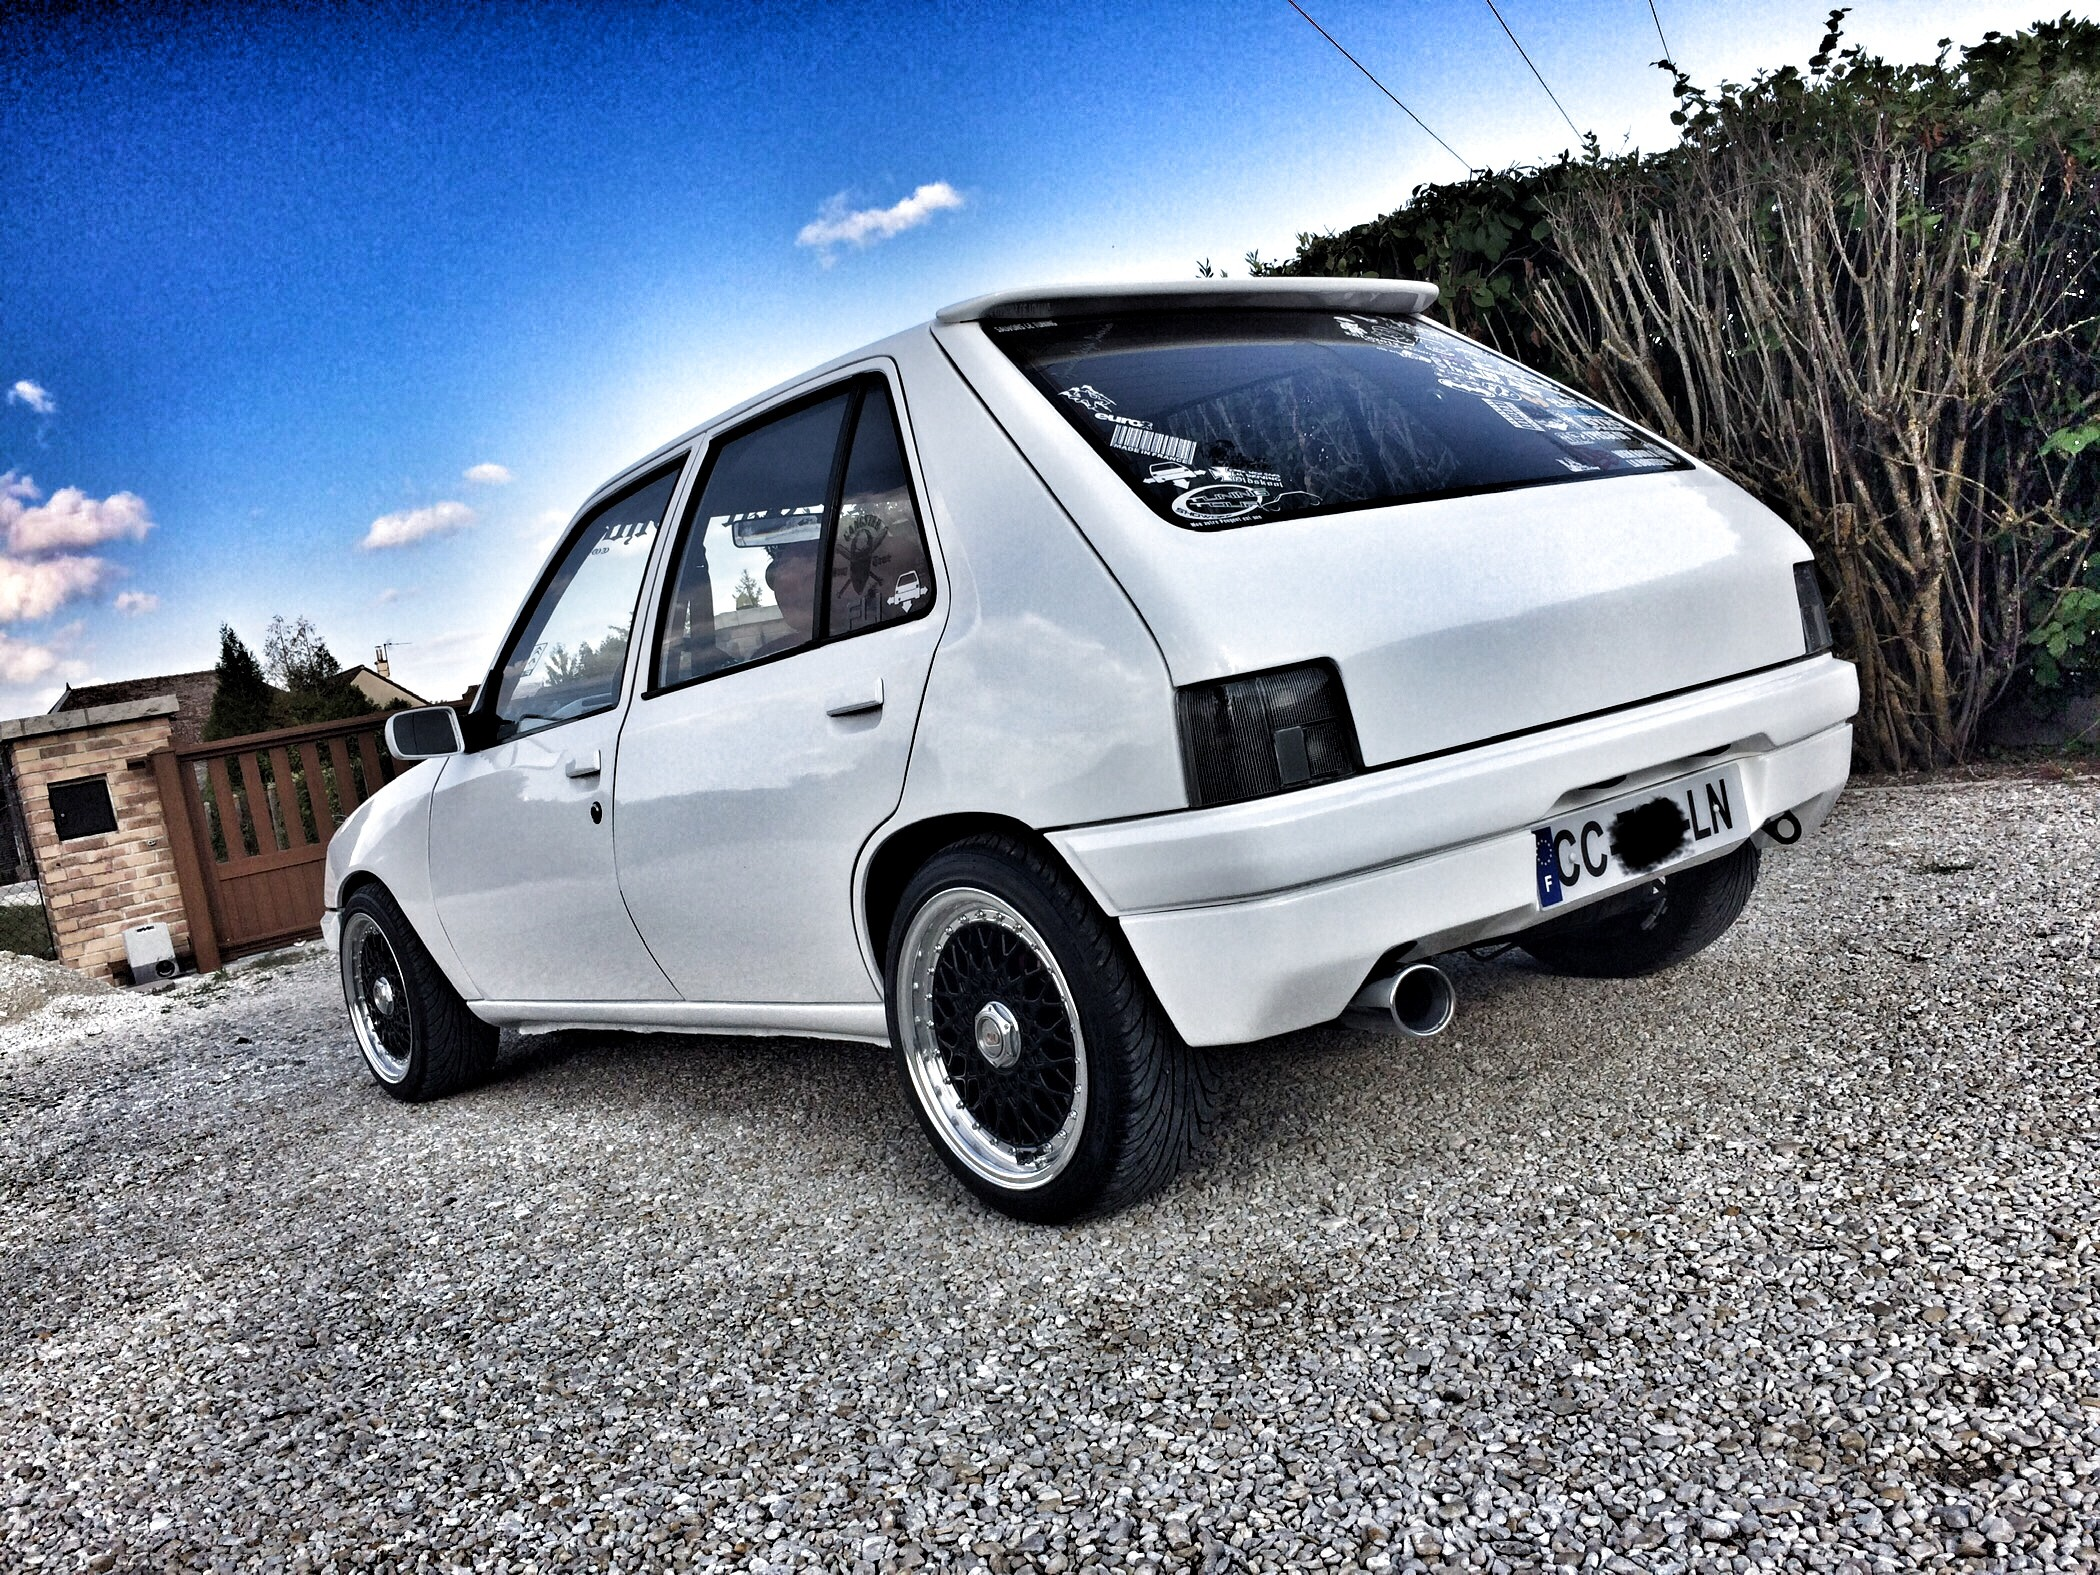 peugeot 205 tuning static car french car low style clean (15)